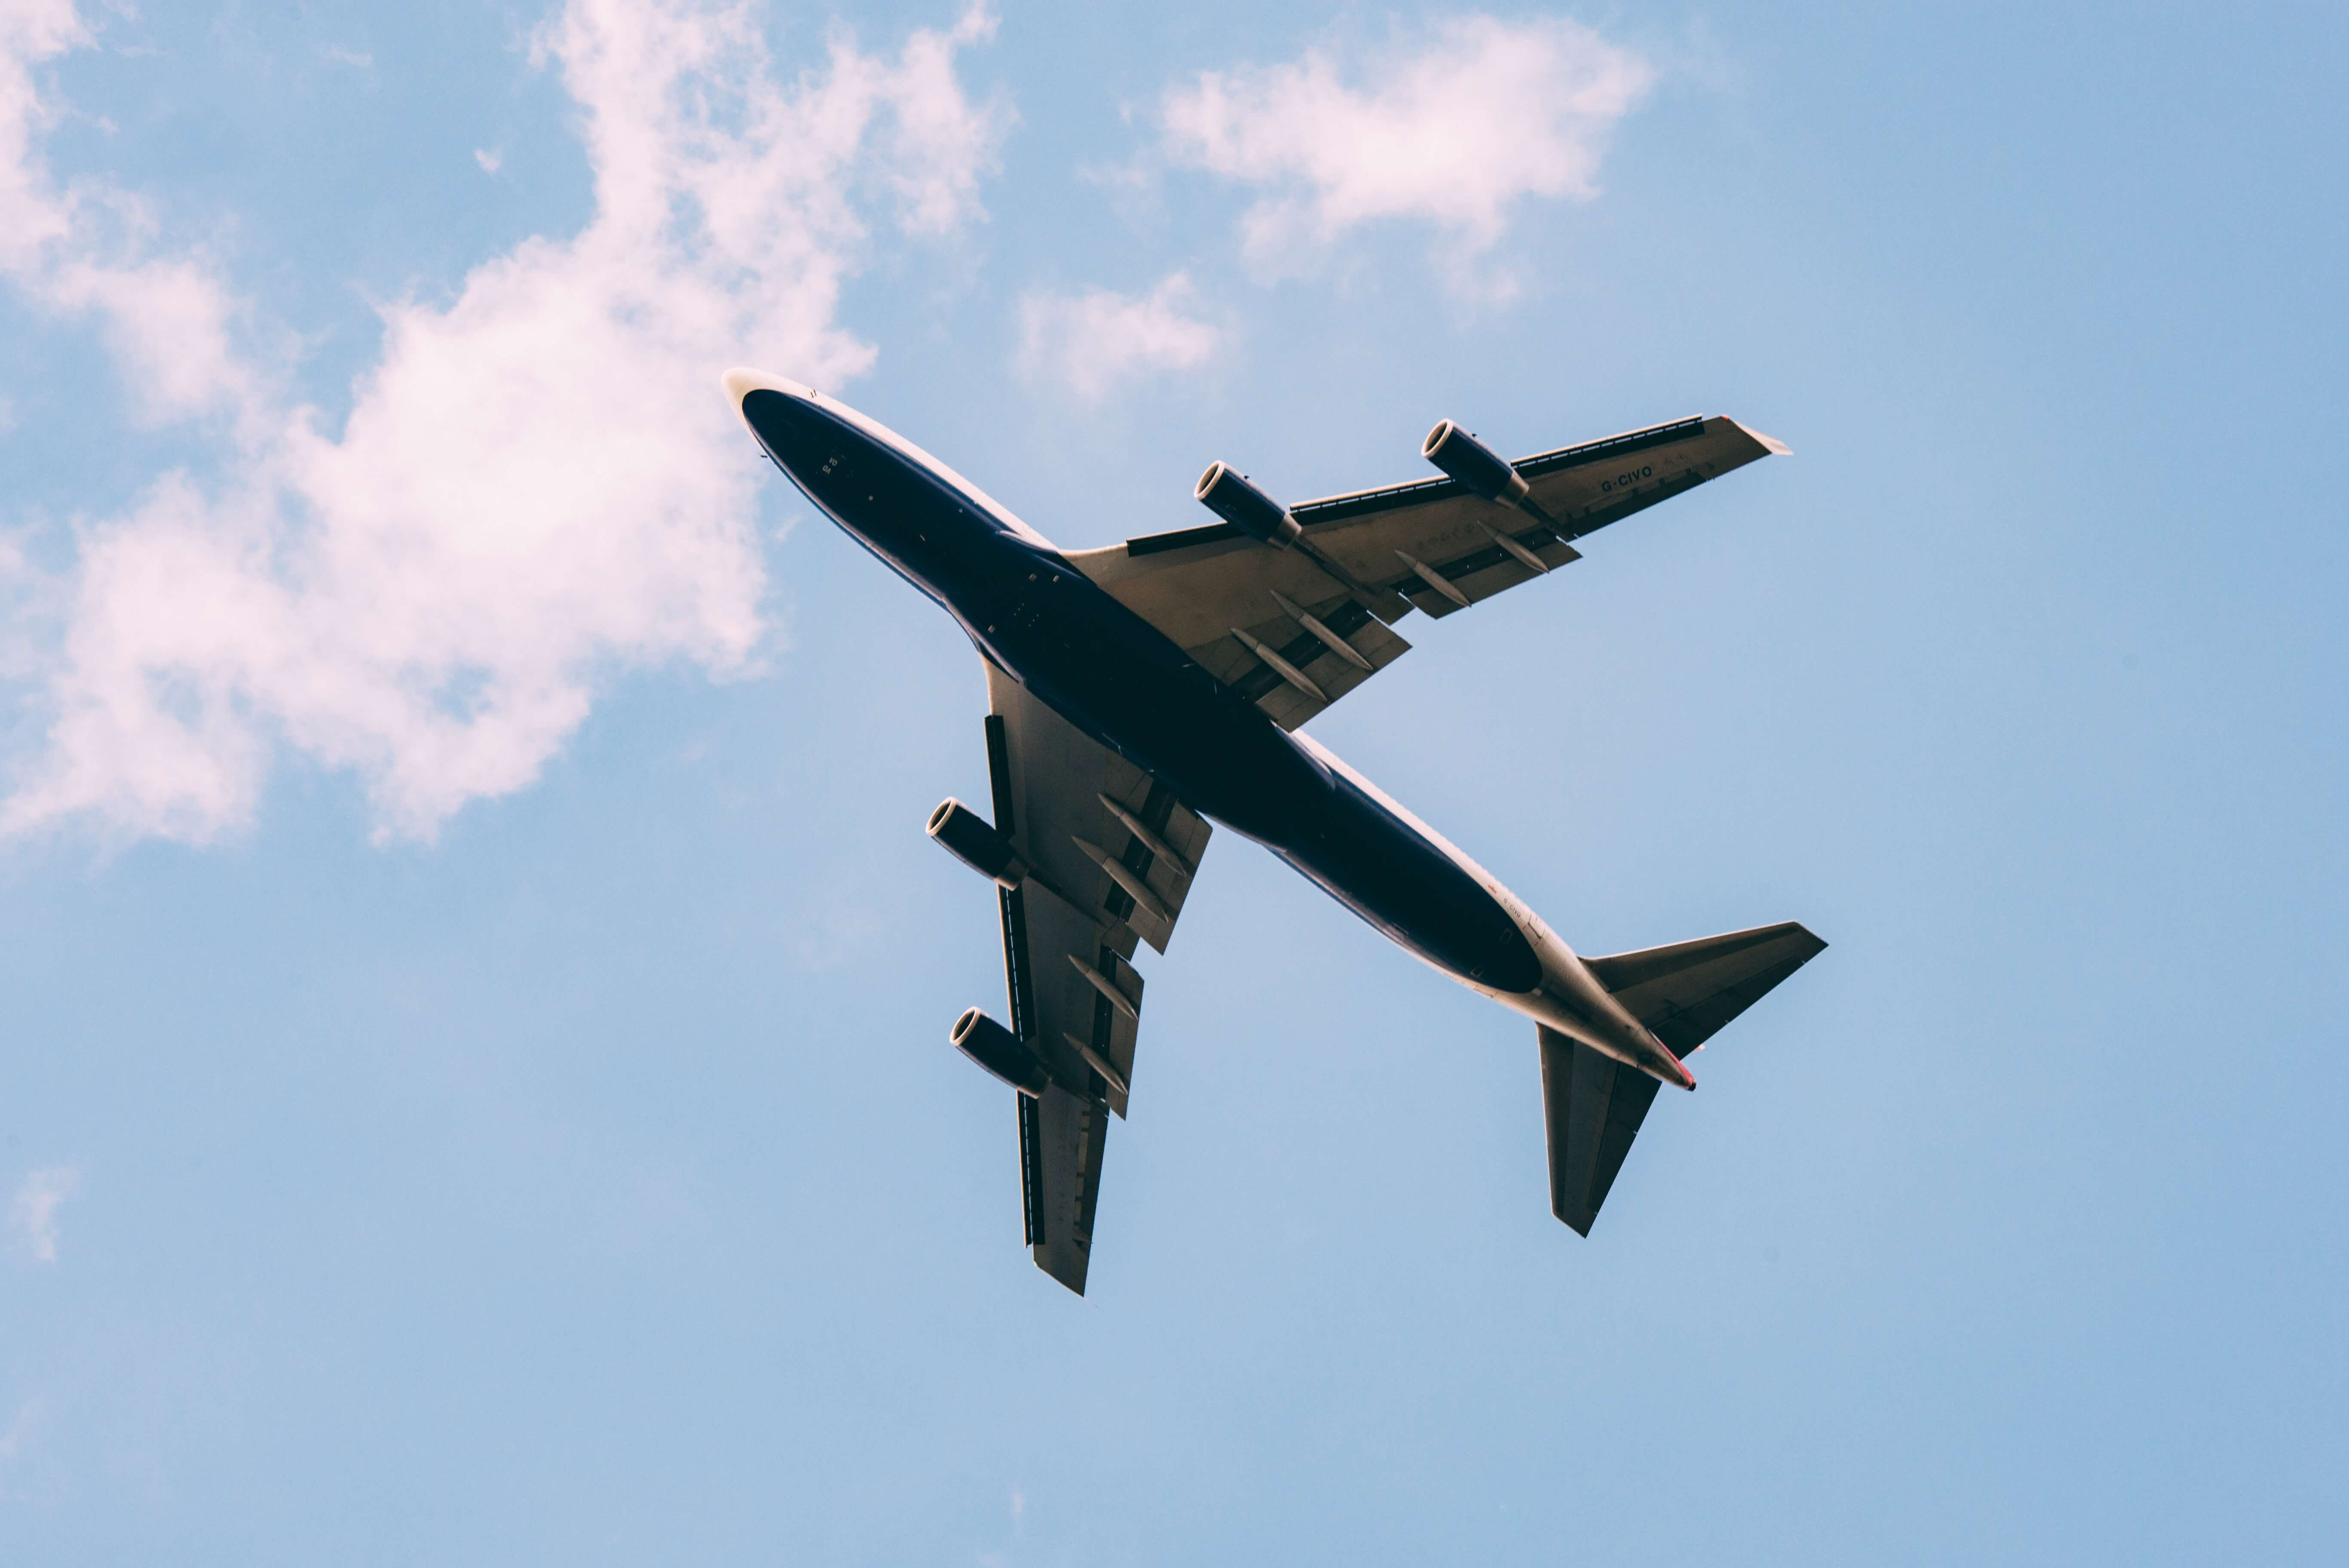 How to get free flight tickets with credit card?